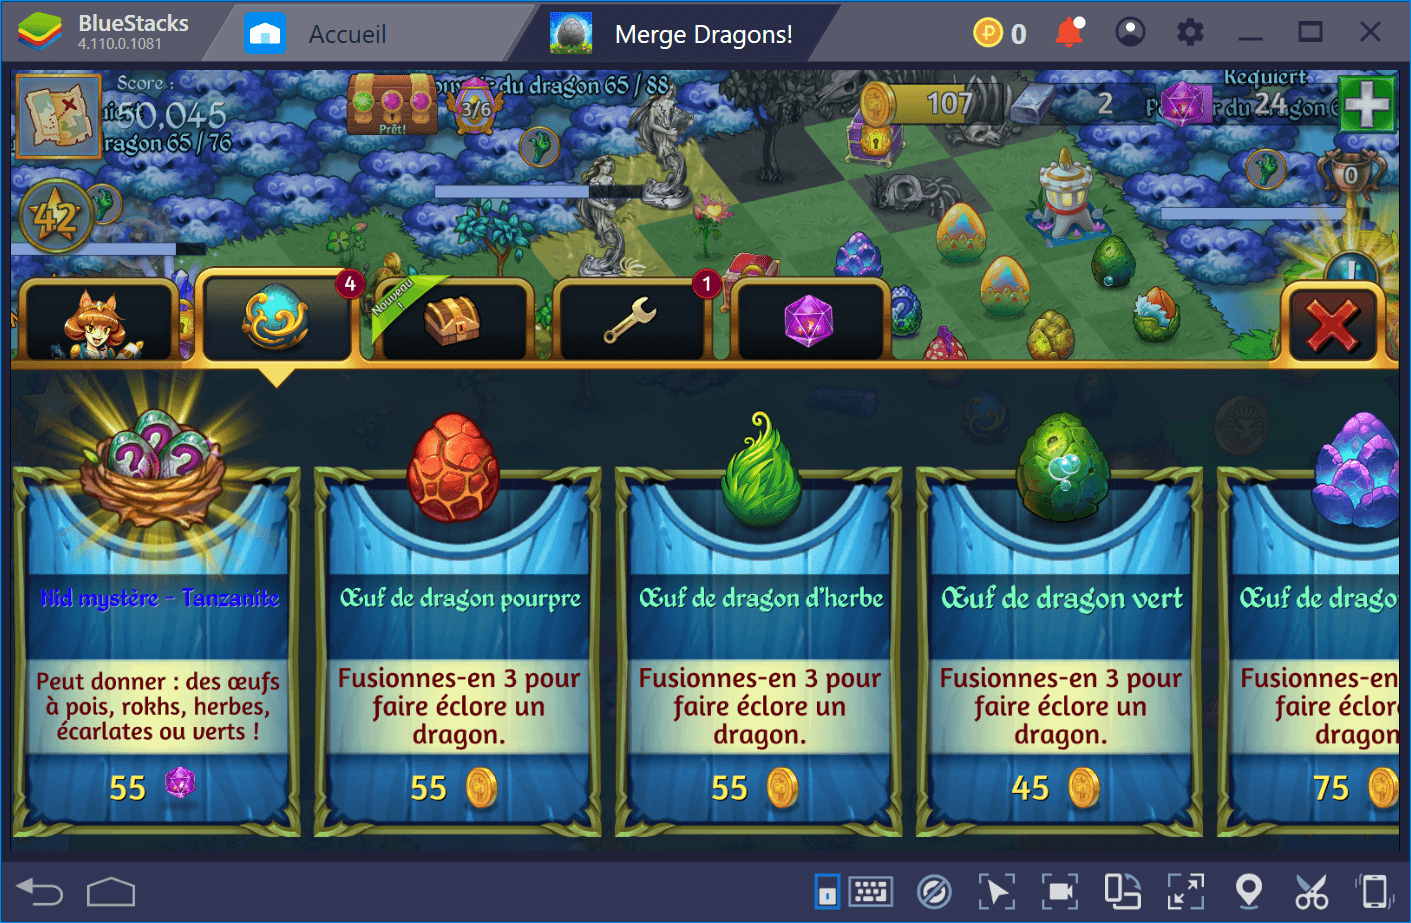 Merge Dragons : Guide pour devenir riche